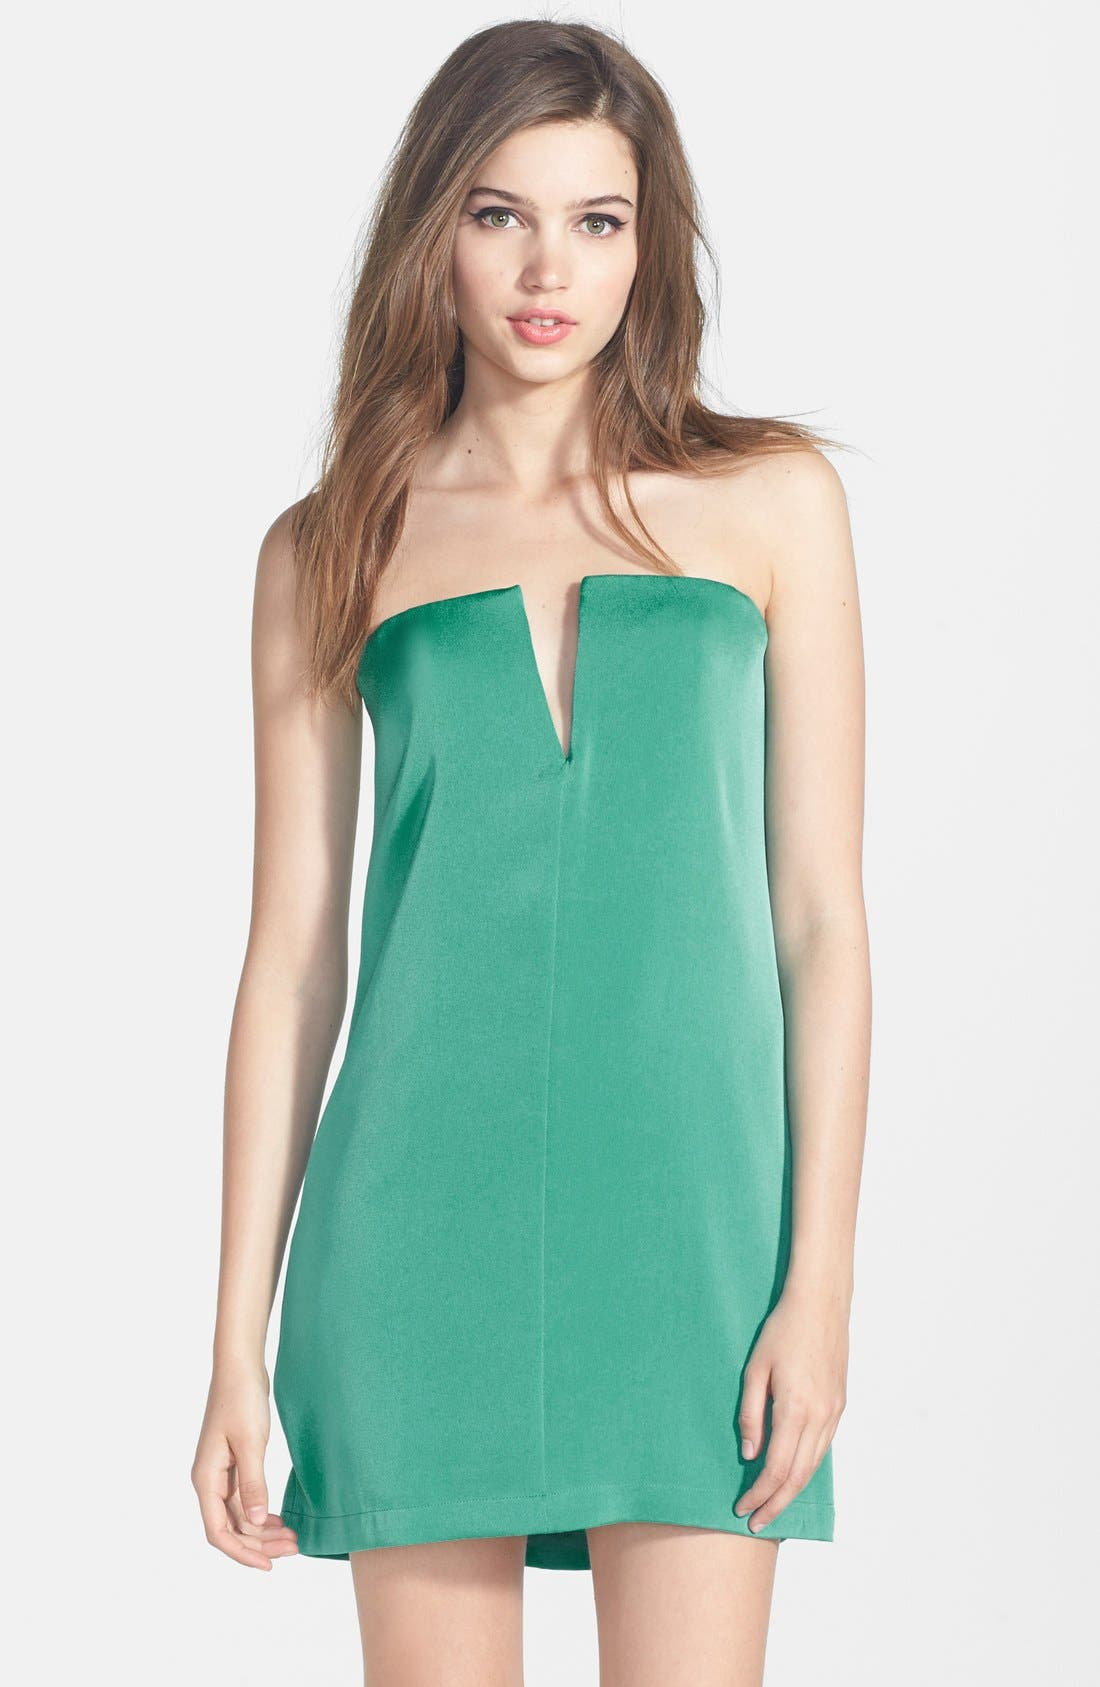 Main Image - BCBGMAXAZRIA 'Nahara' Strapless Crêpe de Chine Dress